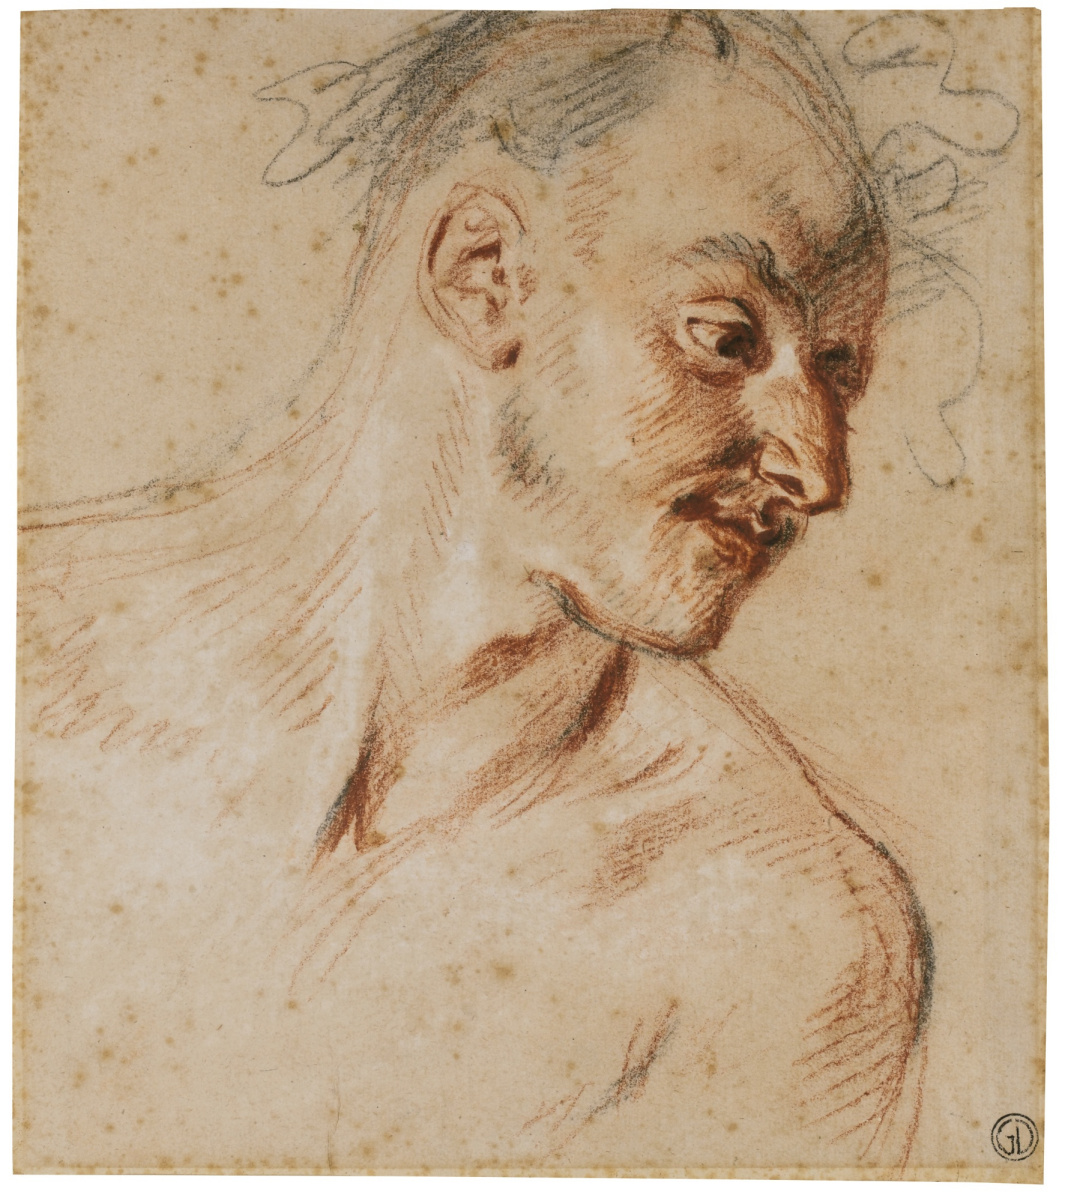 Antoine Watteau. A sketch of the head of the Faun